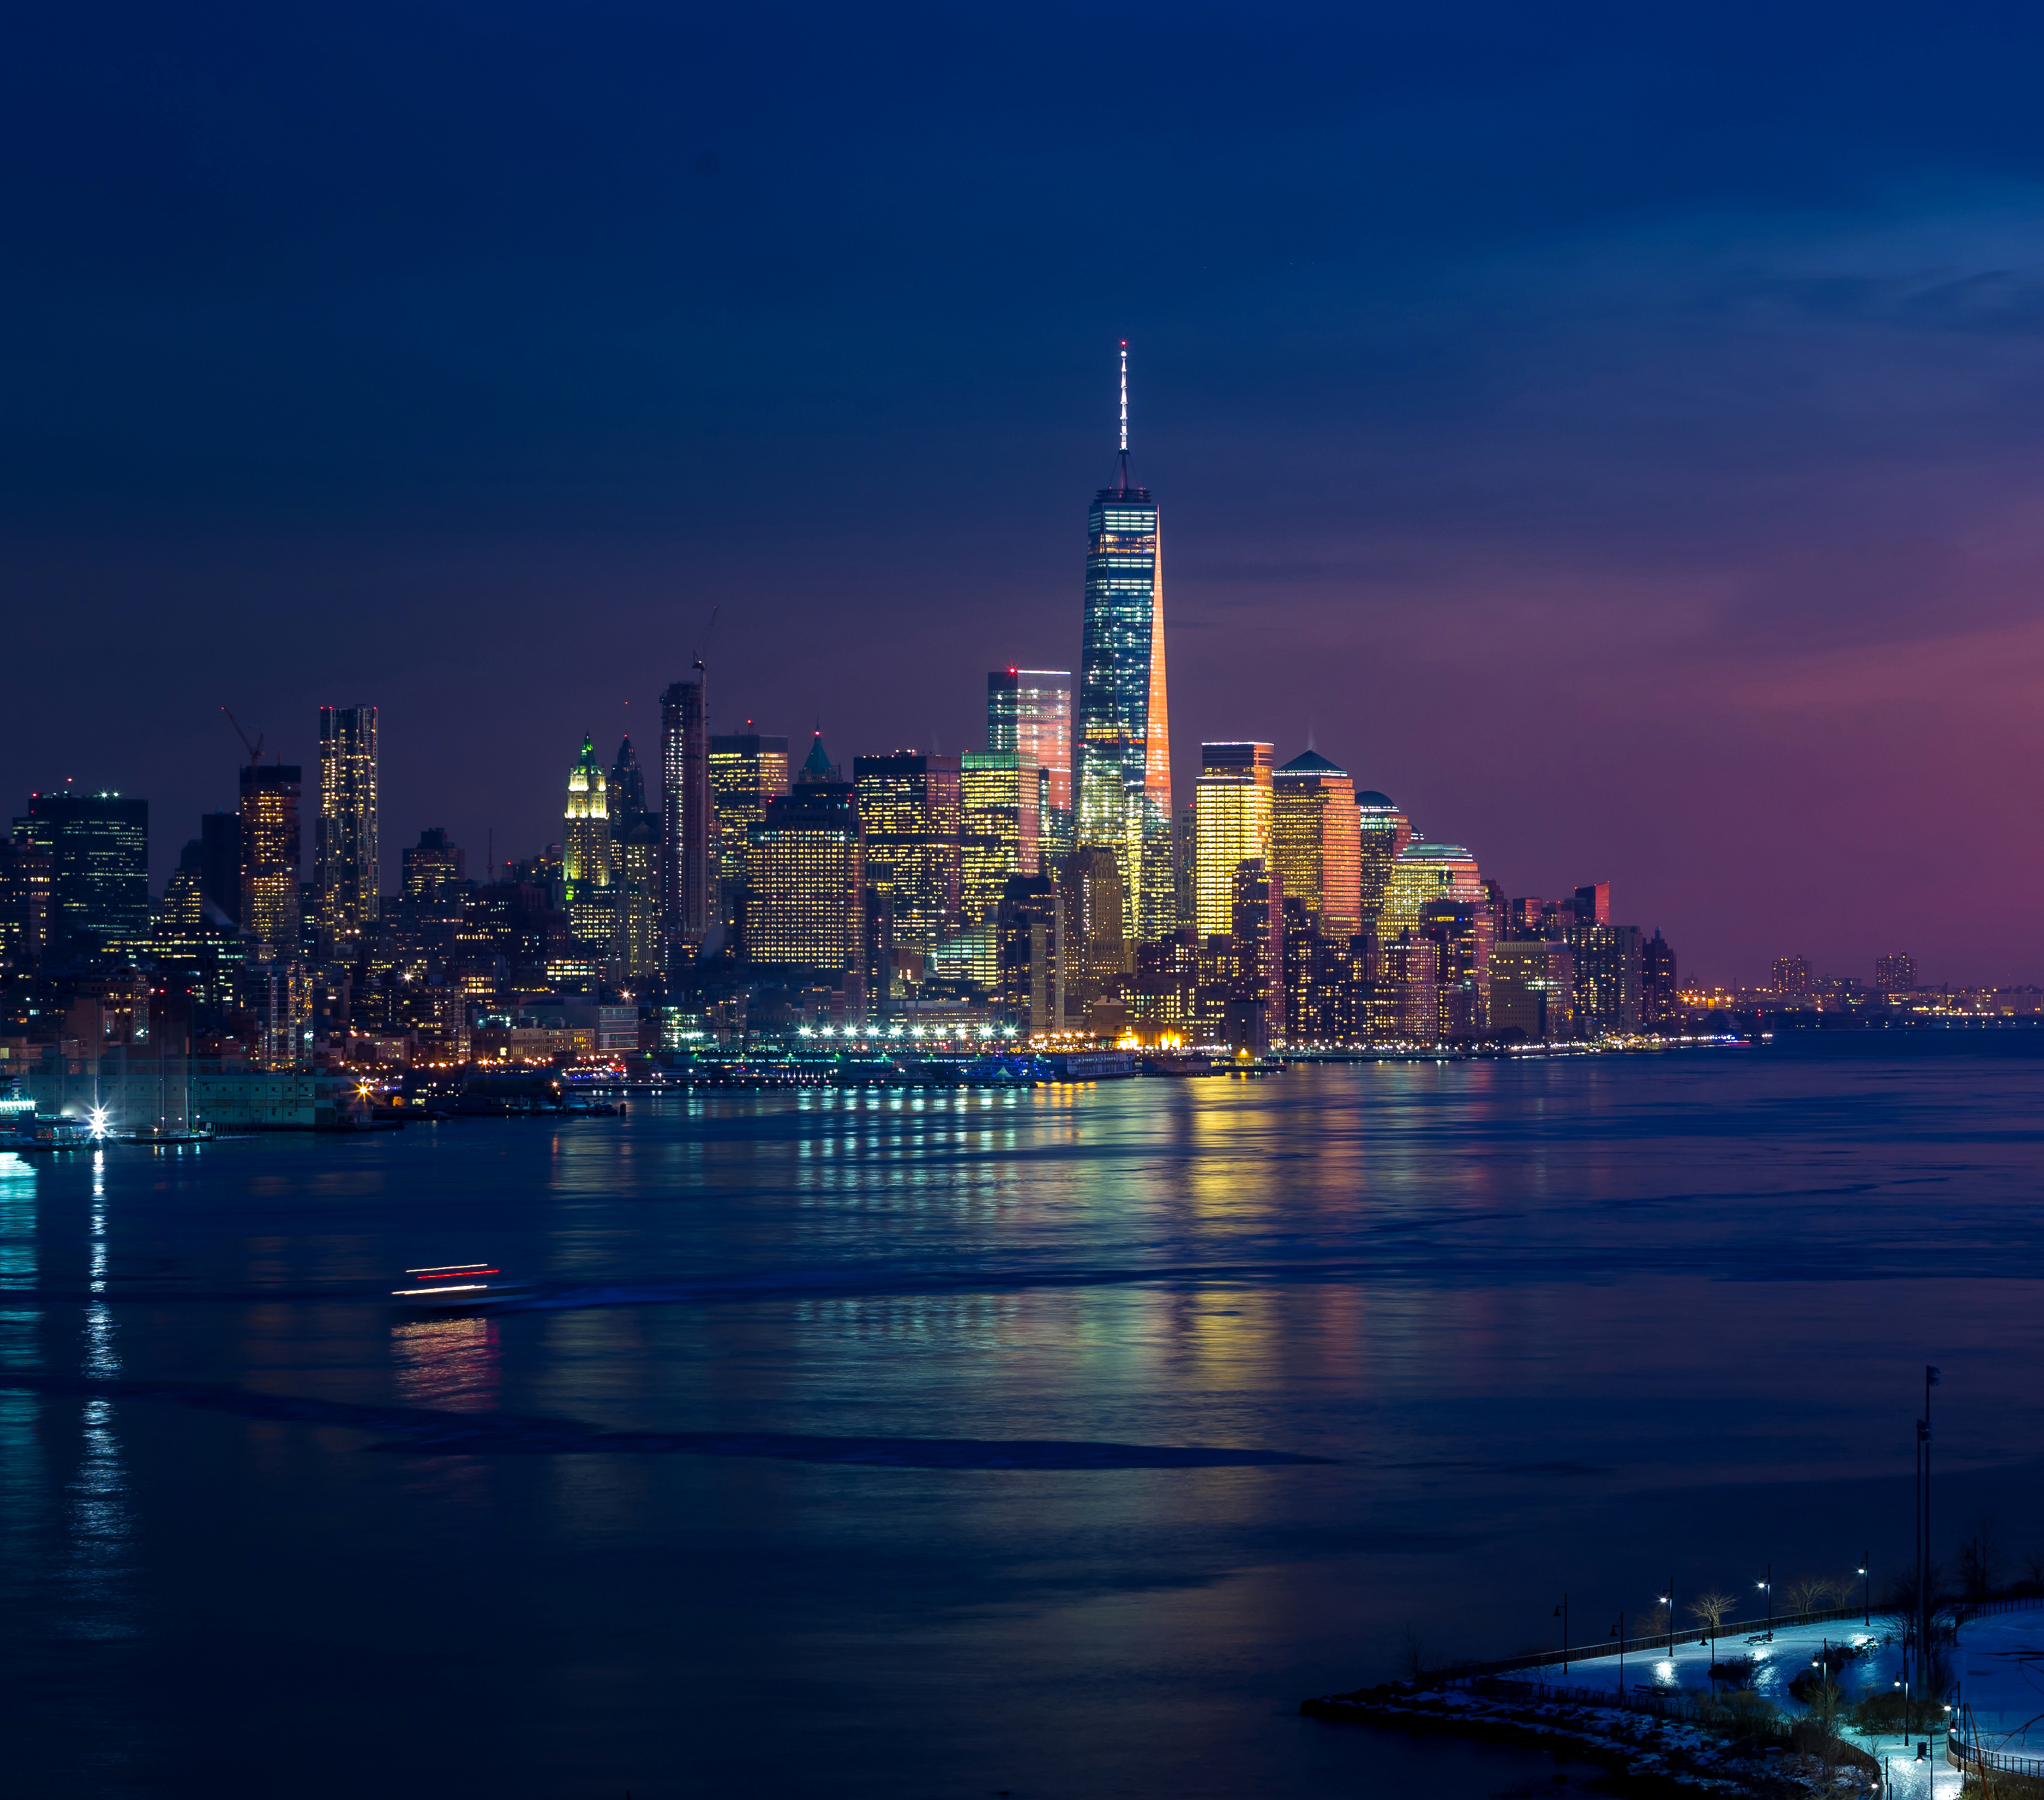 1440x2960 new york skycrapper 4k buildings lights samsung - Samsung s9 wallpaper 4k ...